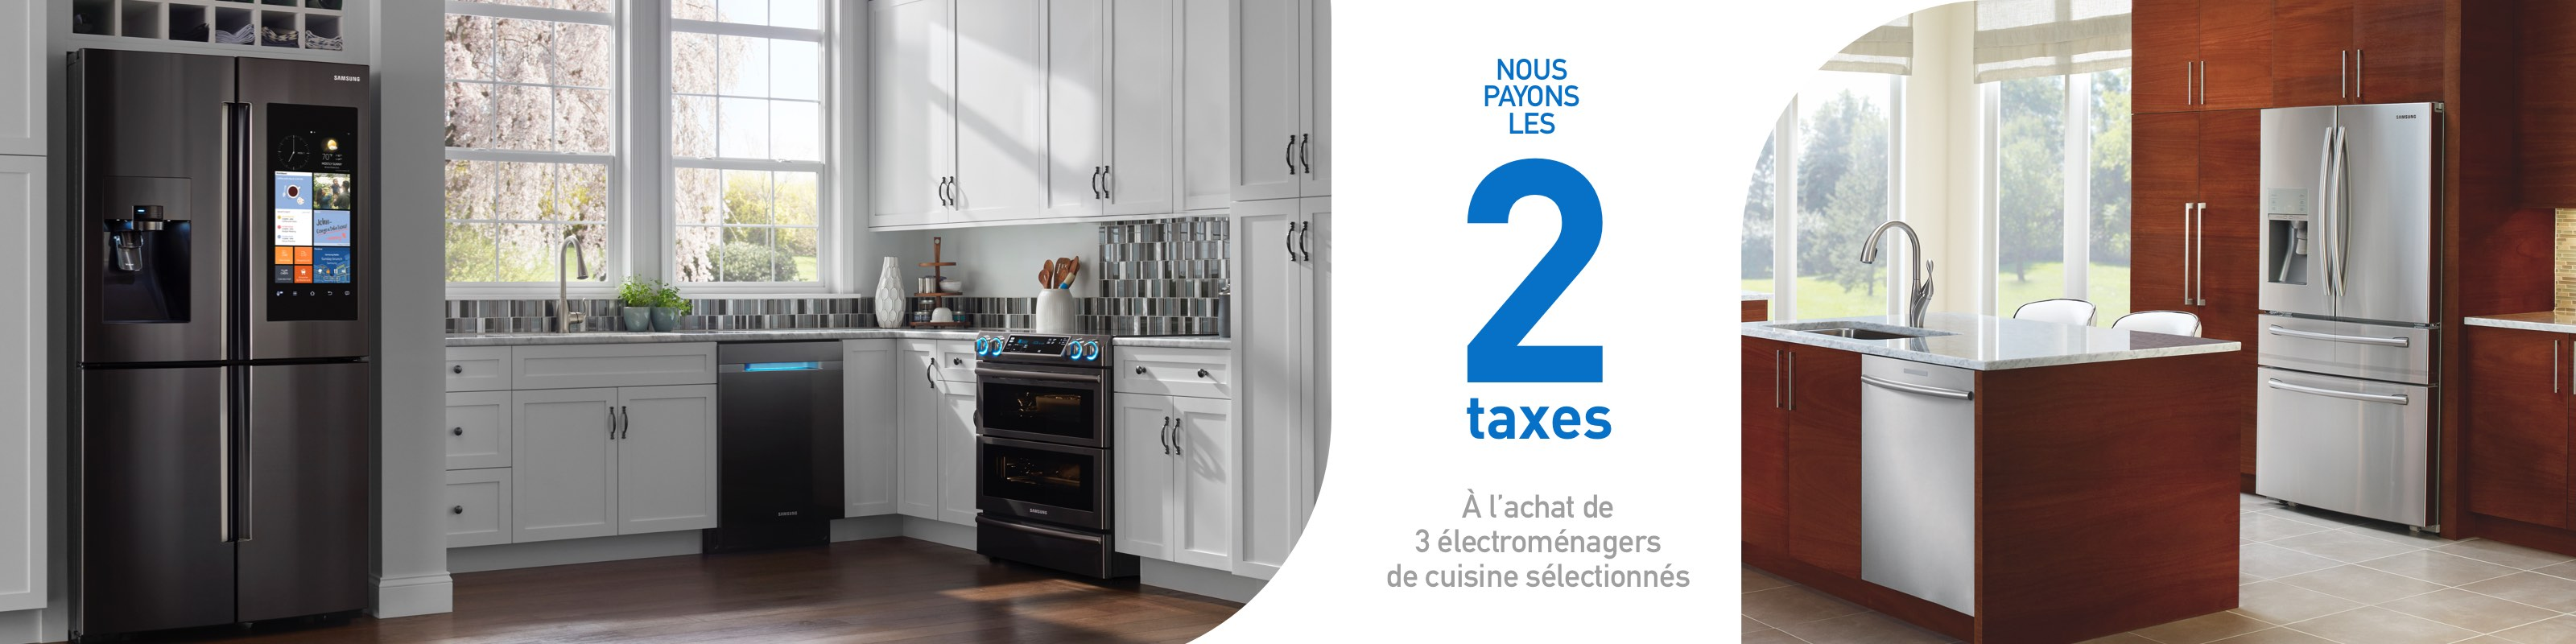 https://cdn.tanguay.ca/userfiles/images/campagne/2021/tanguay/06-_demenagement/nouvelle-version/web_carrousel_1600x400_2tx_electromenagers_v2_2x_v3.jpg